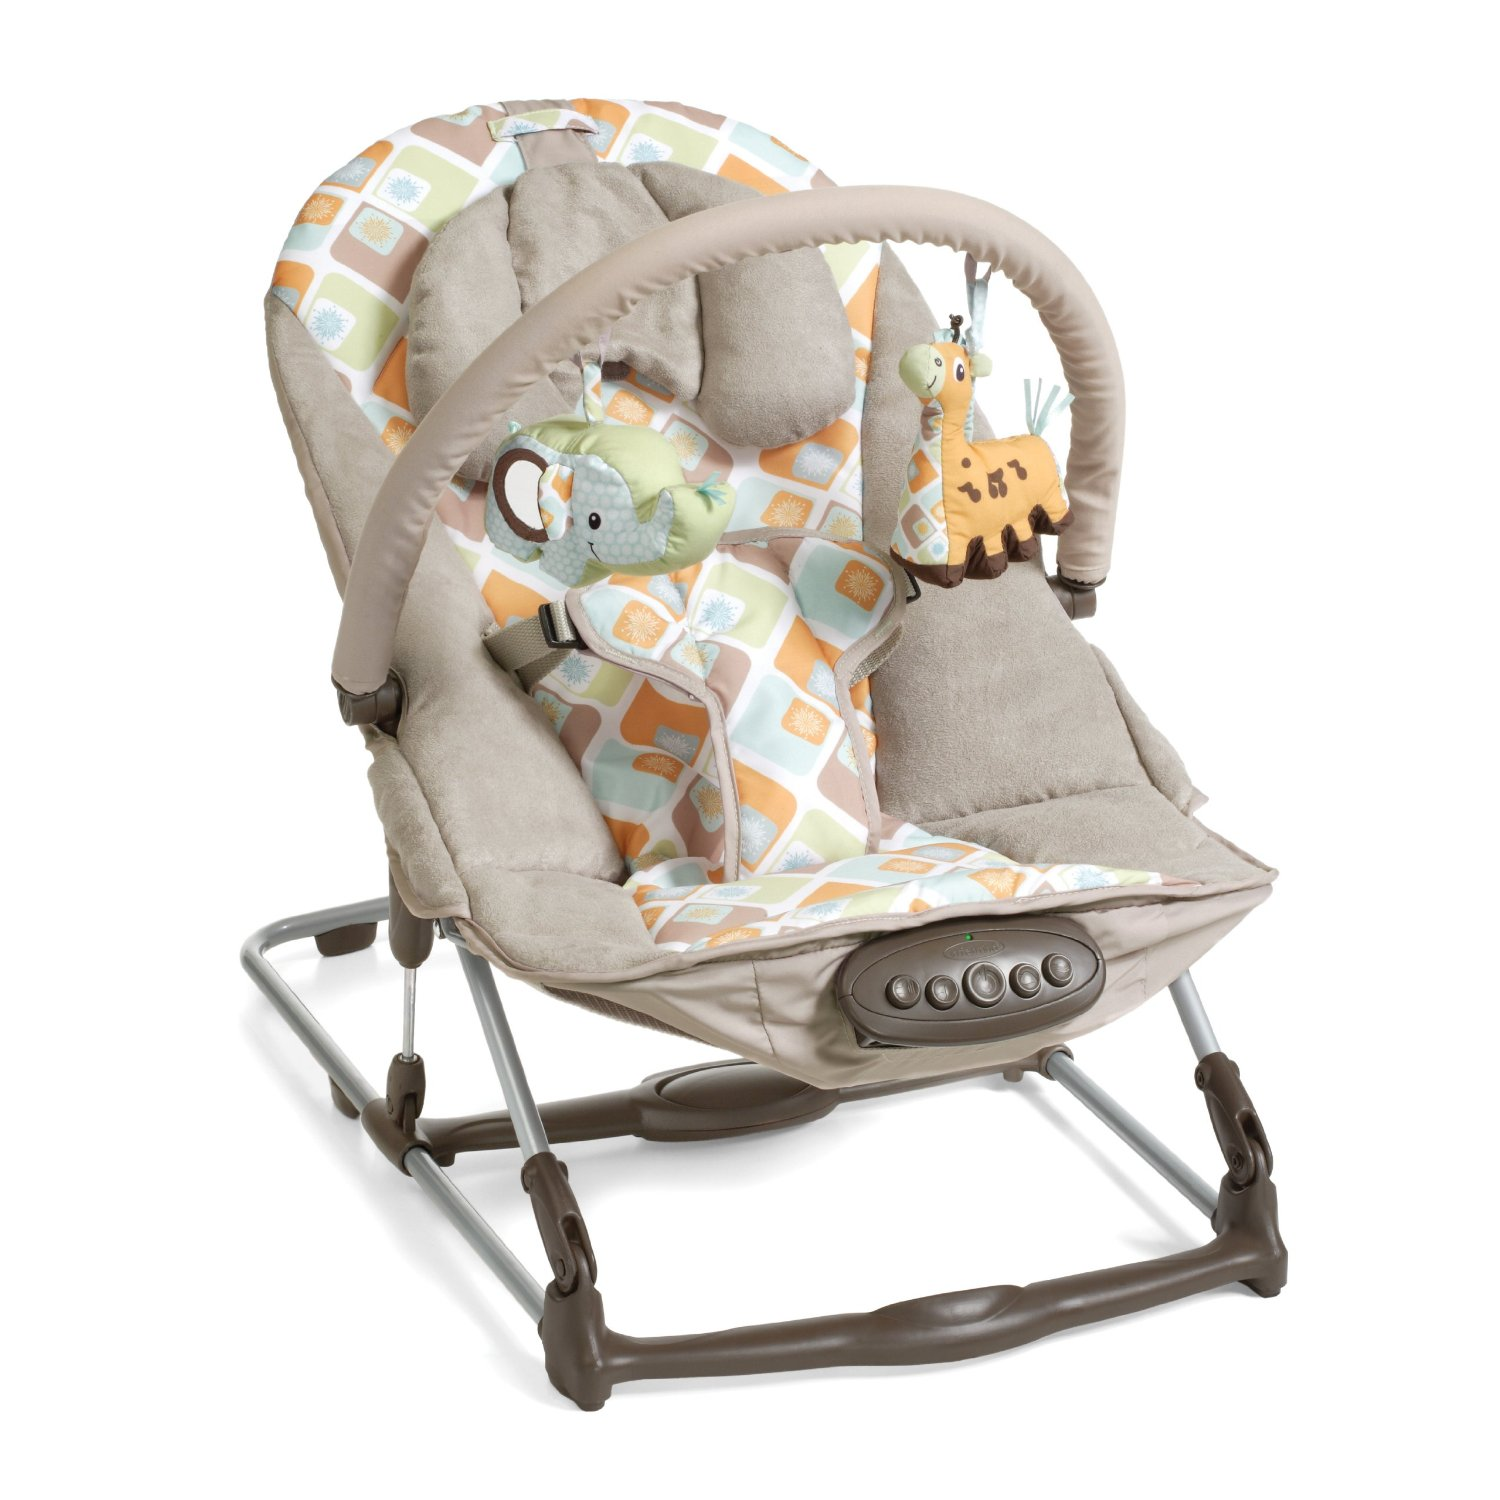 Swing Chair Baby Best Rv Table And Chairs For Sale Next Stop Another Top 10 List